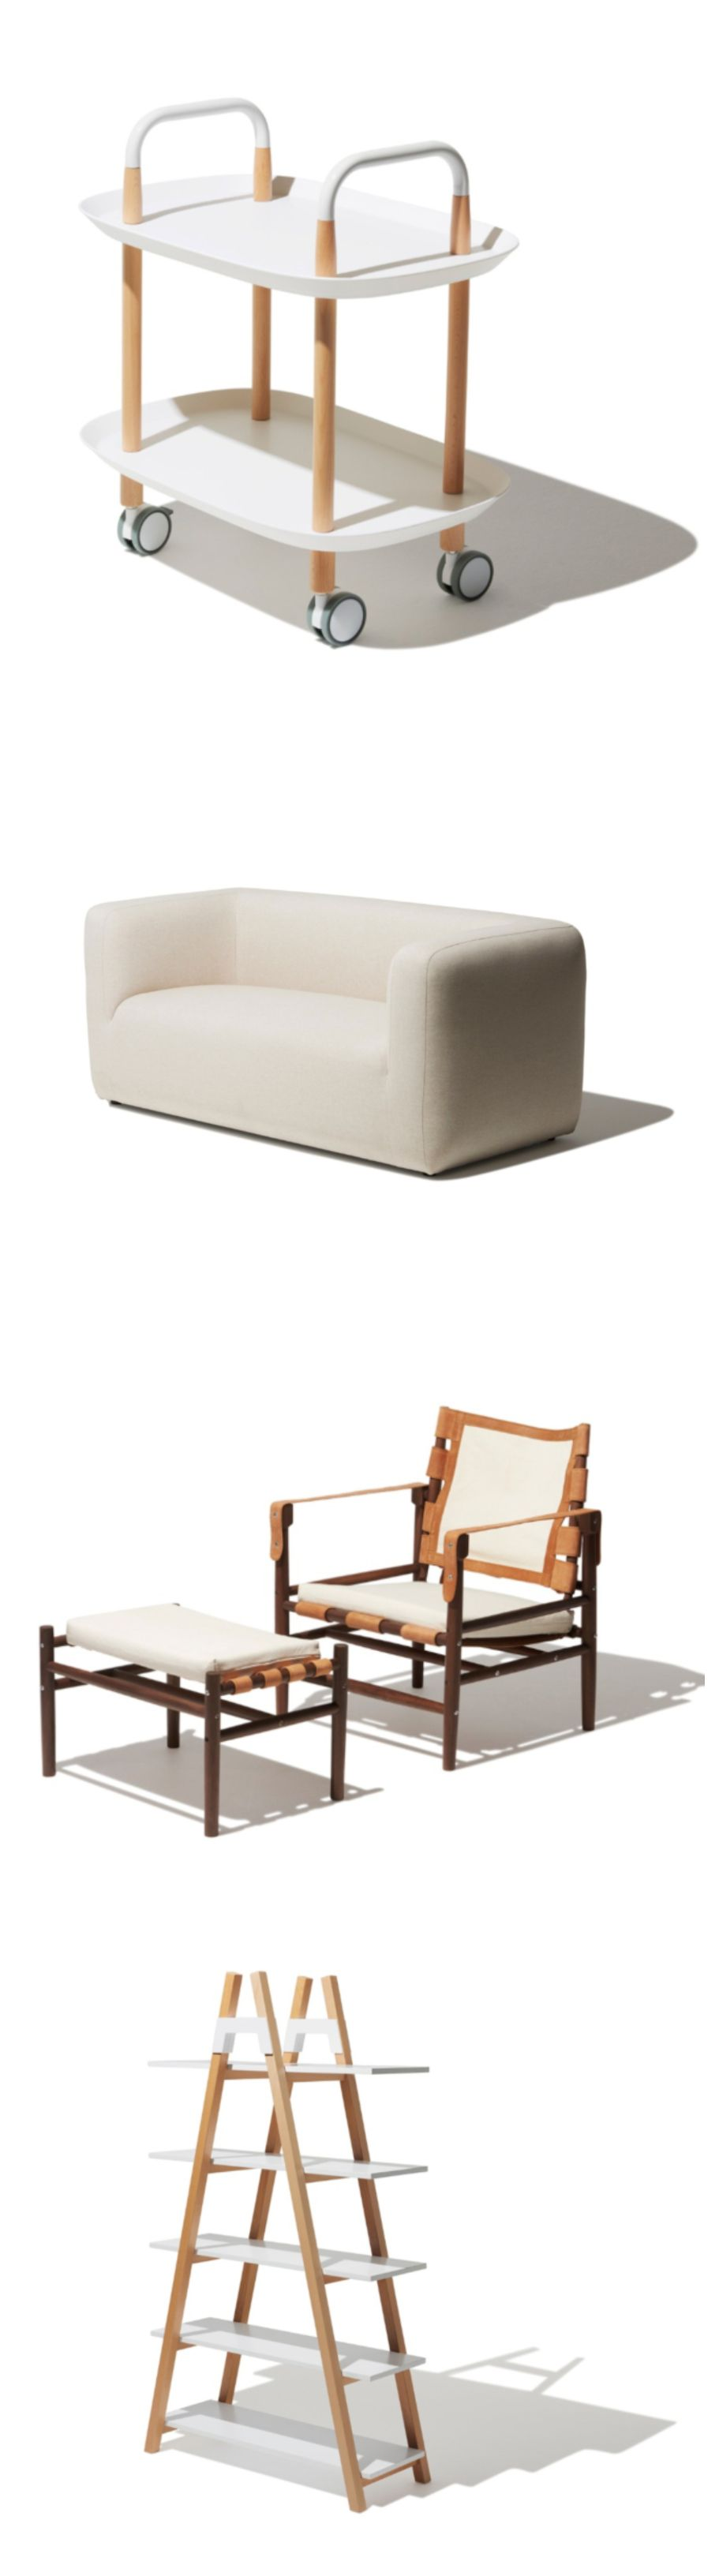 Shop new arrivals from industry west my portland home in